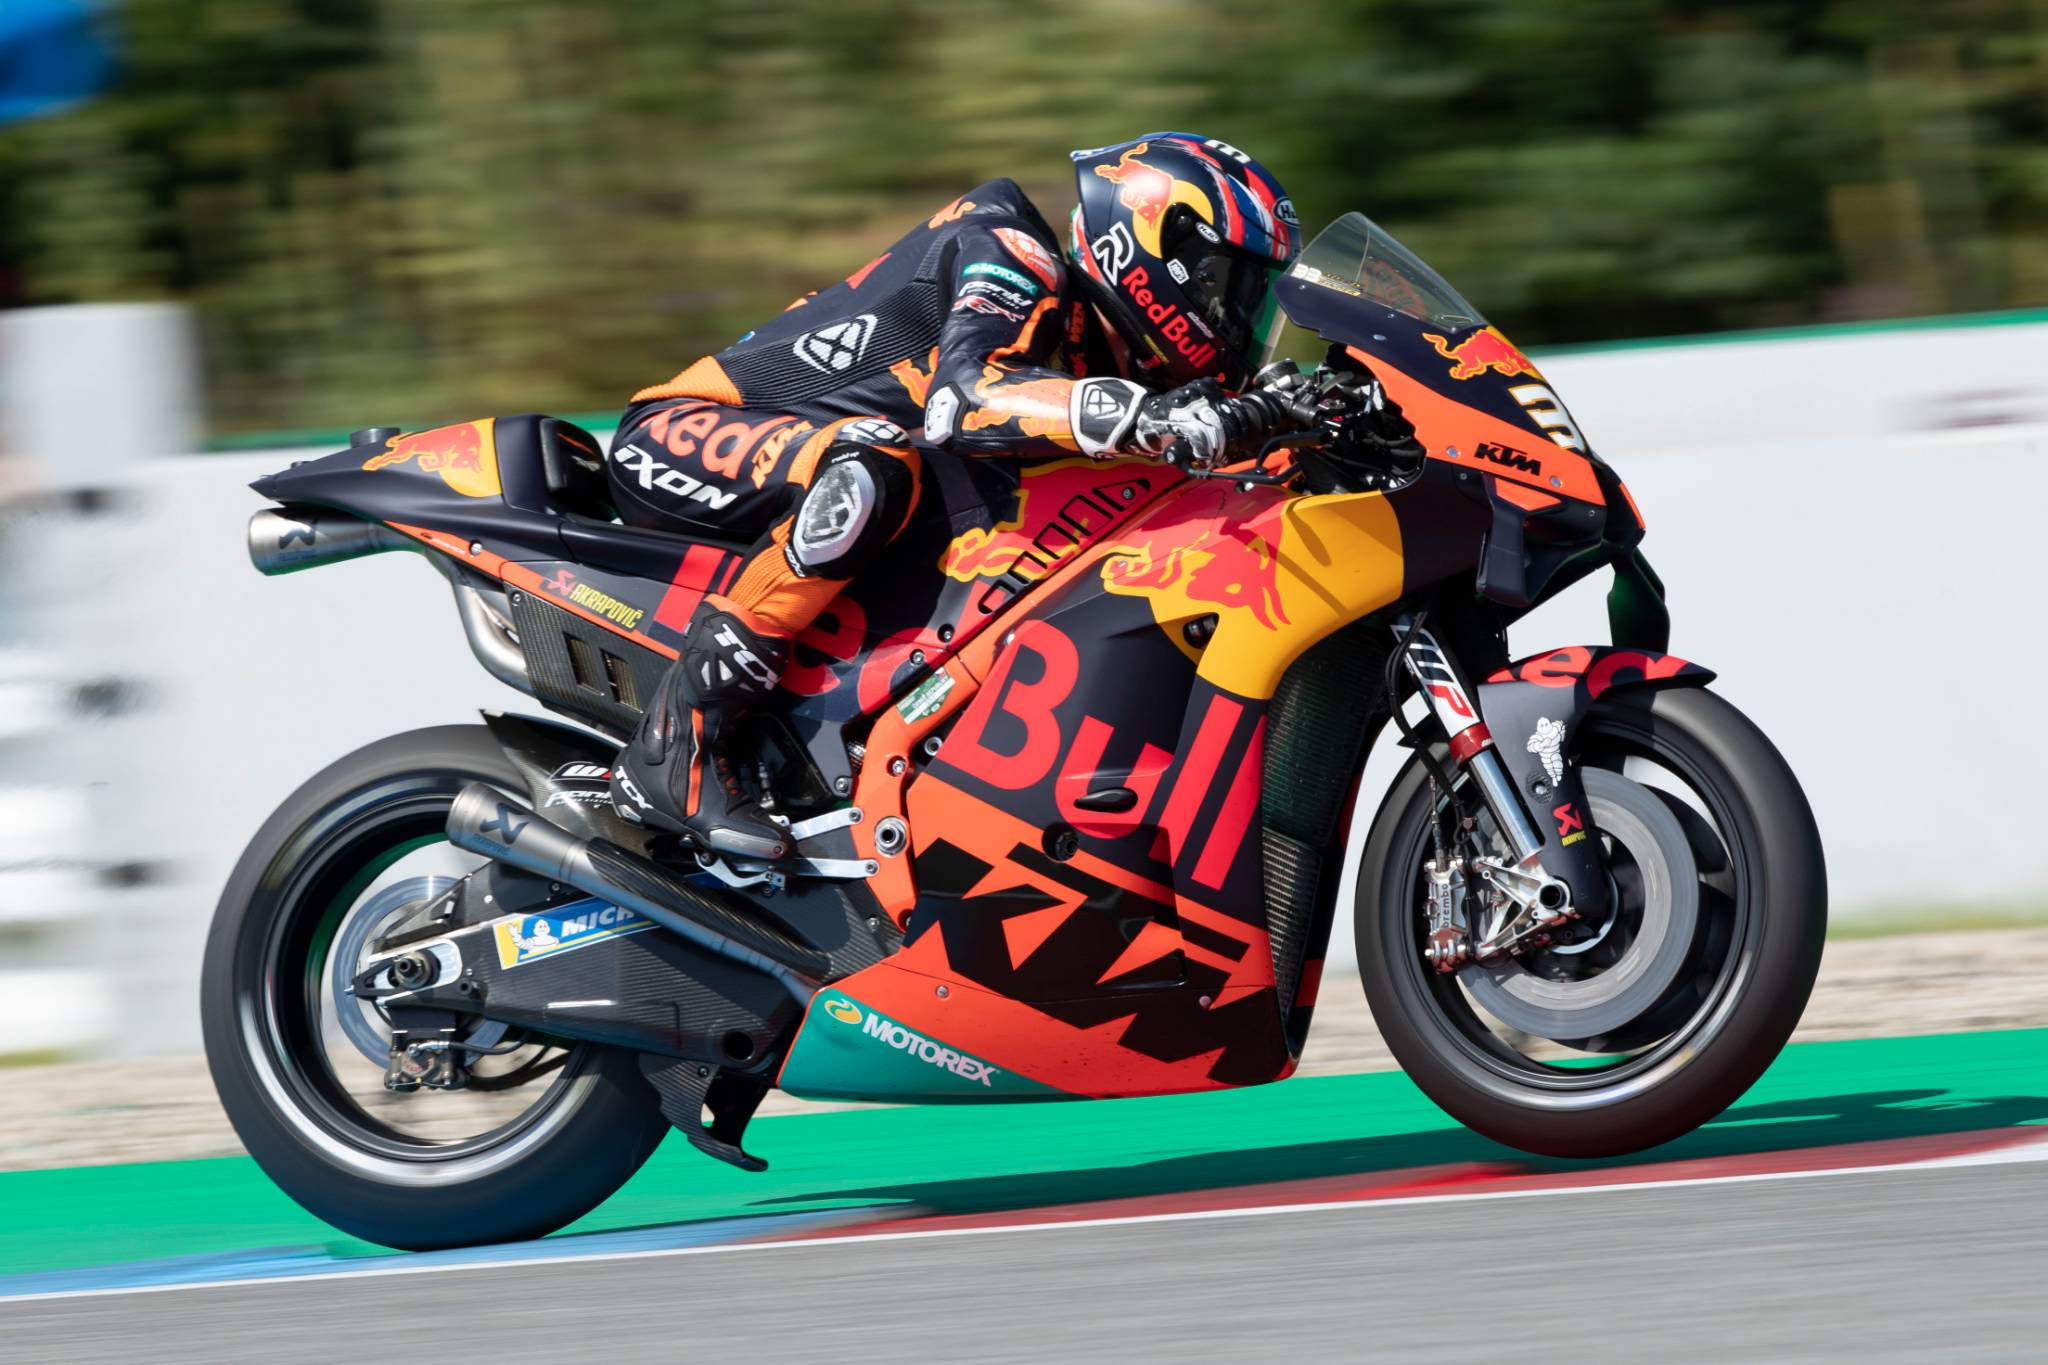 Ktm S Pit Beirer We Started In Motogp With Nothing Motogp Feature